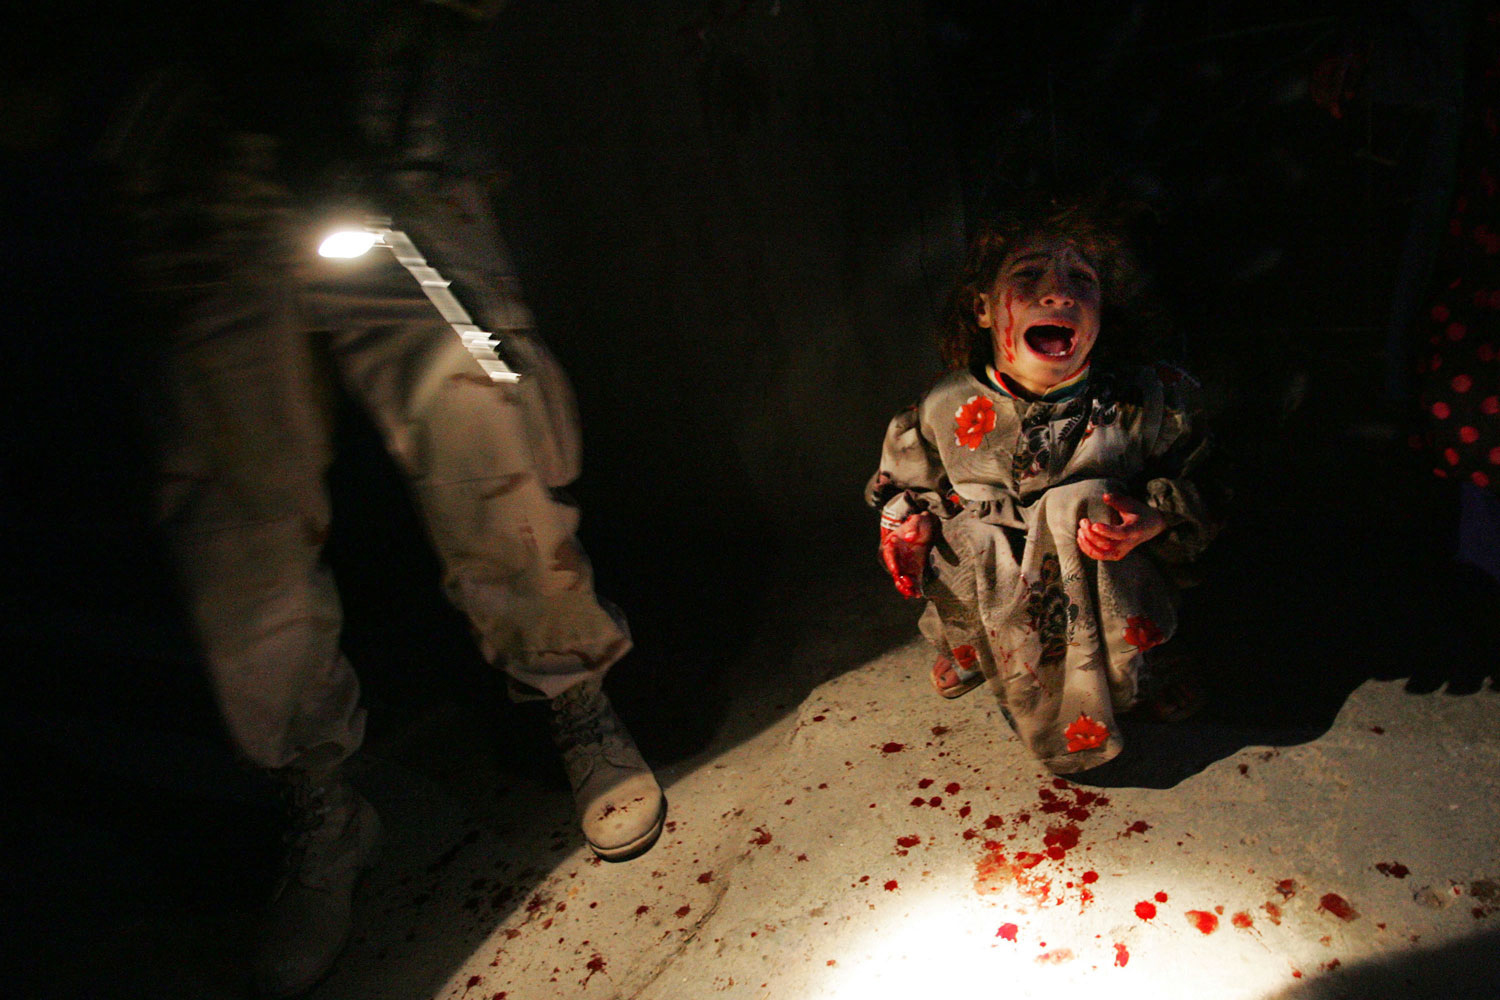 Tal Afar, Iraq, January 18, 2005:  Samar Hassan, 5, screams after her parents were killed by U.S. Soldiers with the 25th Infantry Division. i The troops fired on the Hassan family car when it unwittingly approached them during a dusk patrol in the tense northern Iraqi town. Parents Hussein and Camila Hassan were killed instantly, and a son Racan, 11, was seriously wounded in the abdomen. Racan, paralyzed from the waist down, was treated later in the U.S.